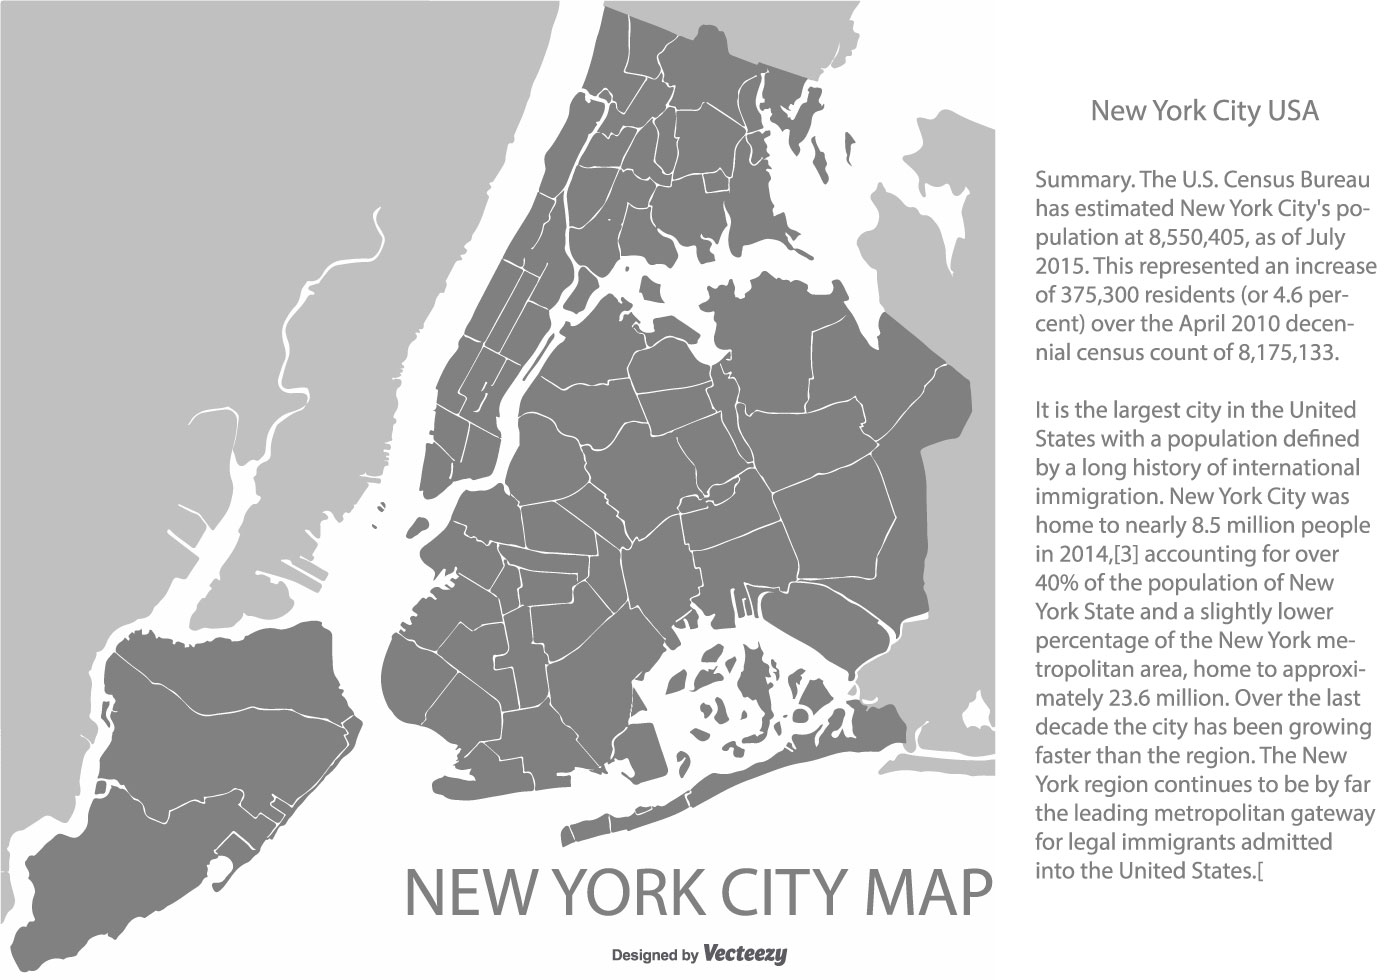 New York Map Black And White.New York City Map Free Vector Art 18458 Free Downloads